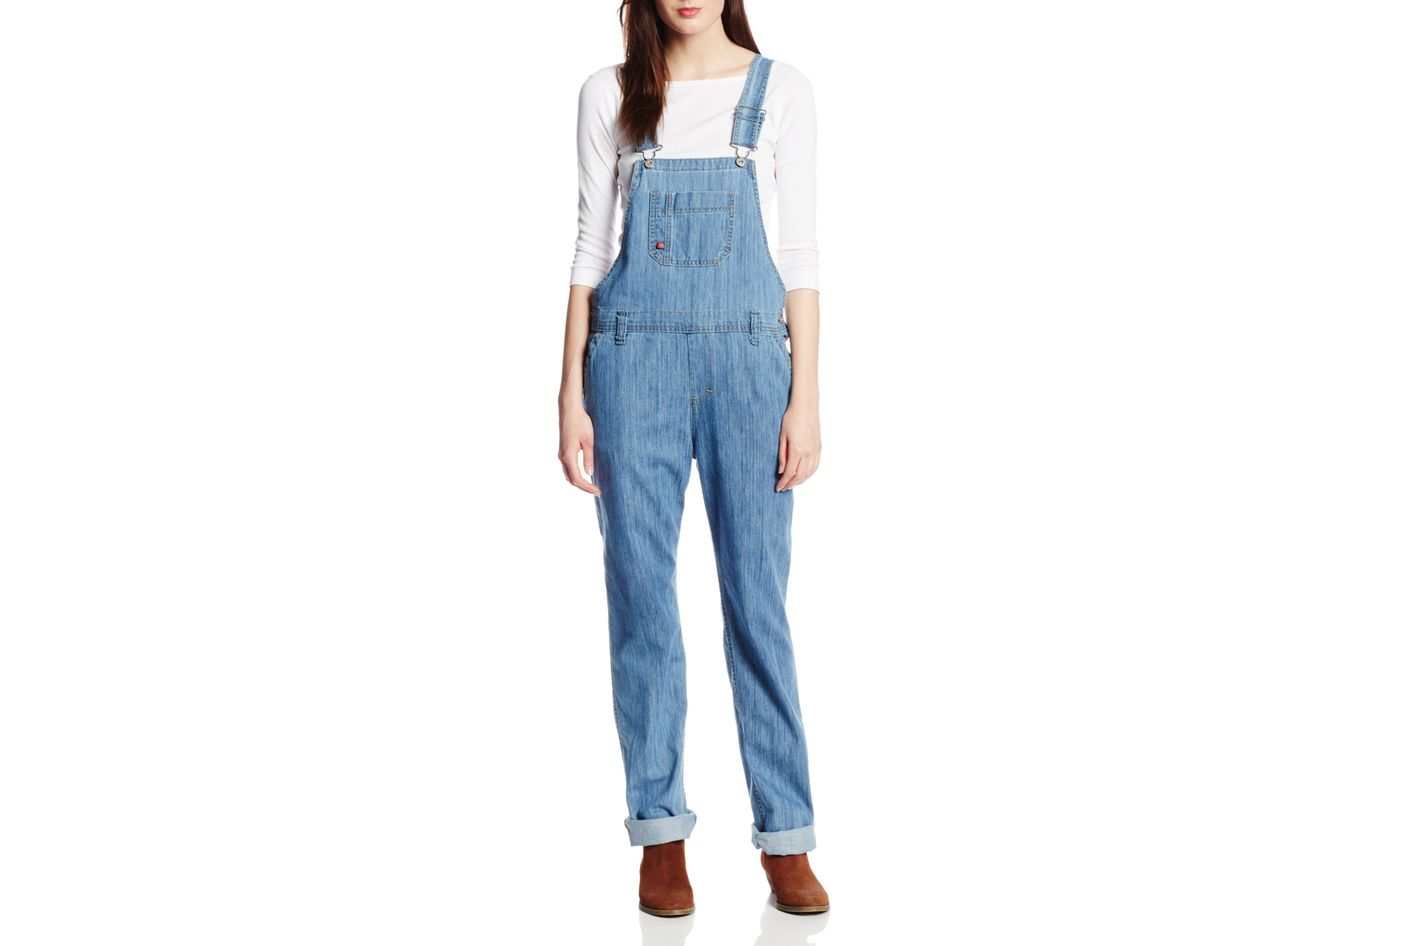 f80253cdb5 Dickies Women's Denim Bib Overall at Amazon